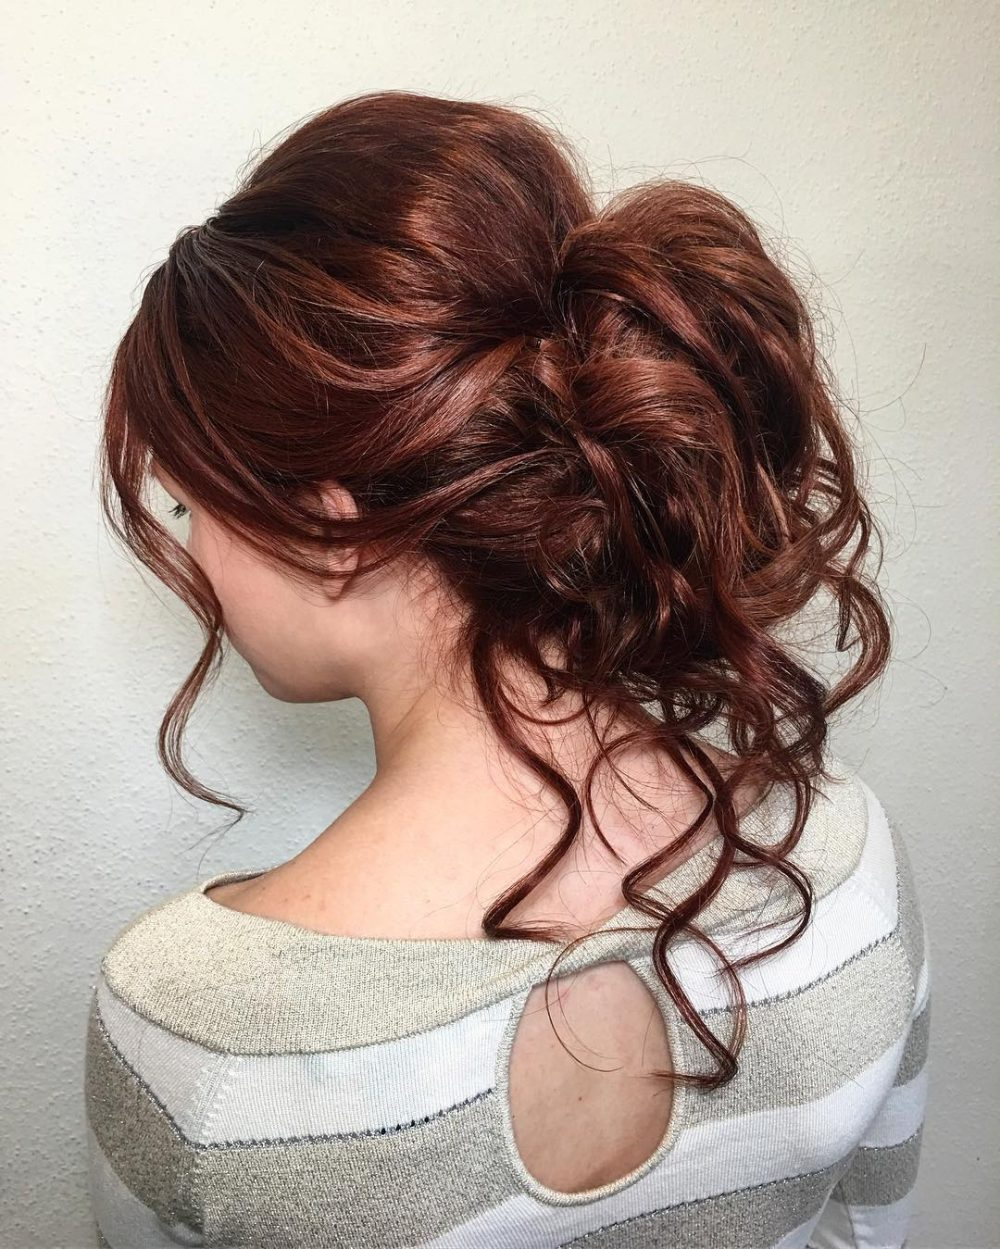 25 Wedding Updos: Find the Perfect One For You